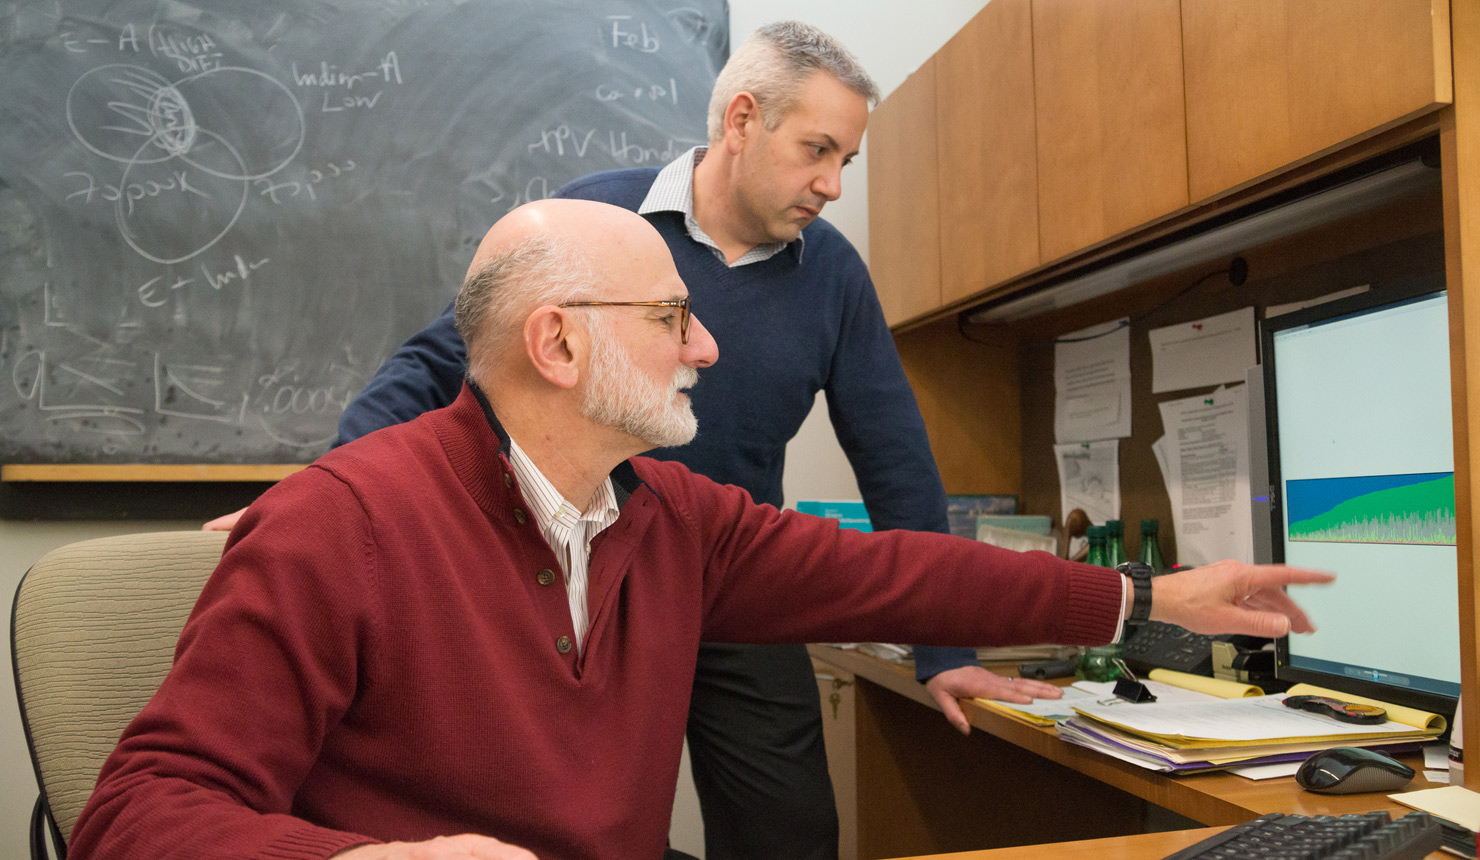 Scott Williams (left) and Carmen Marsit (right) are co-directors of $2.5-million Burroughs Wellcome Fund training grant that will promote collaboration between computational scientists and biomedical researchers.